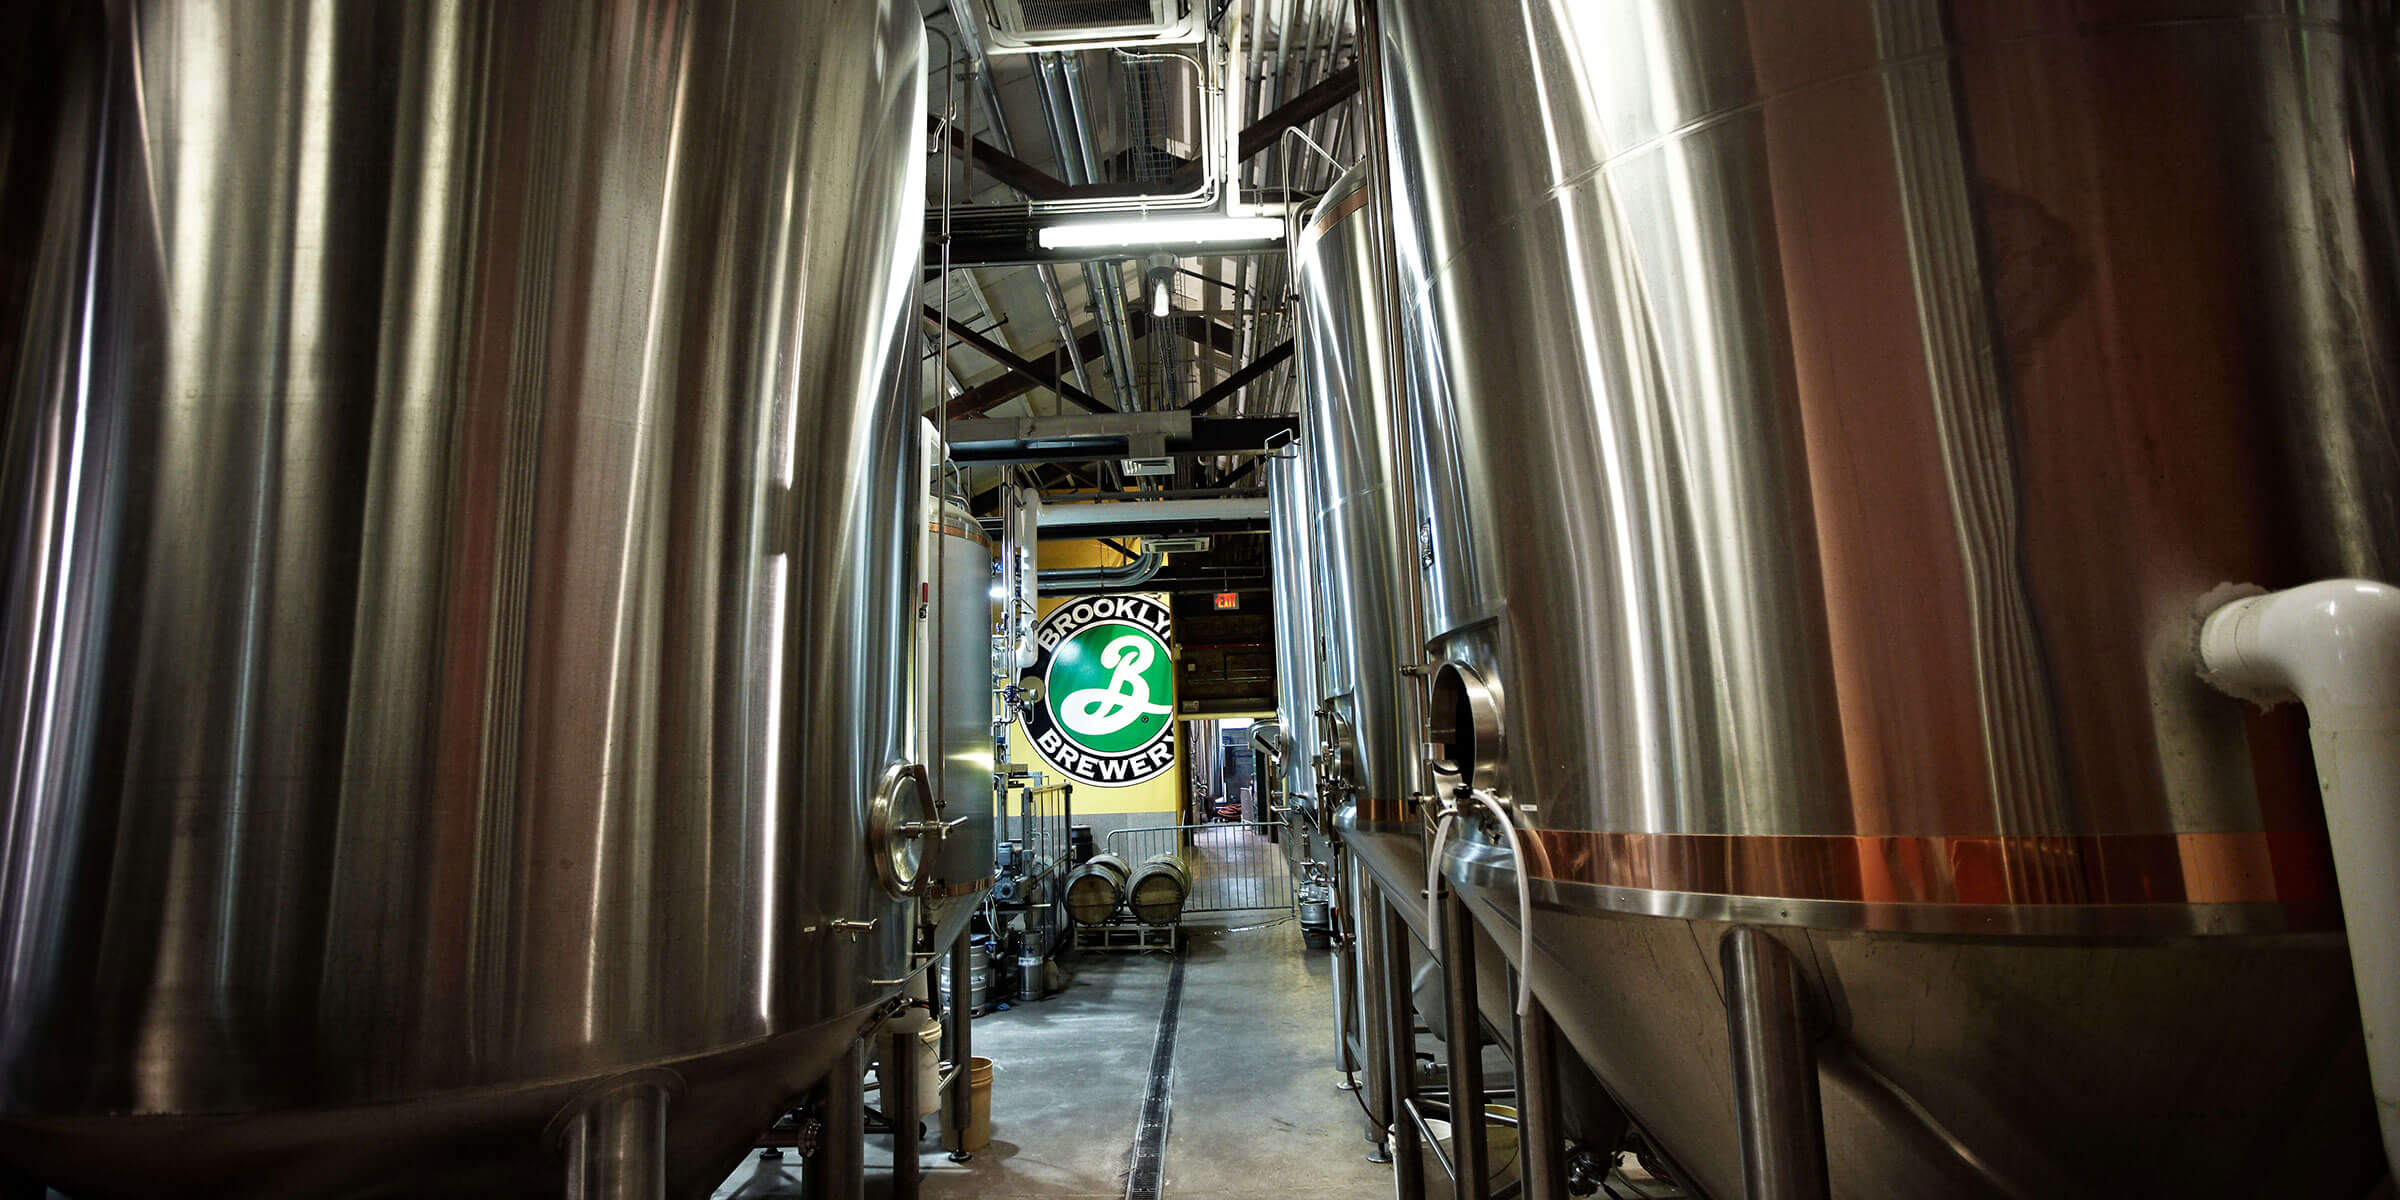 Inside the brewhouse at Brooklyn Brewery in Brooklyn, New York